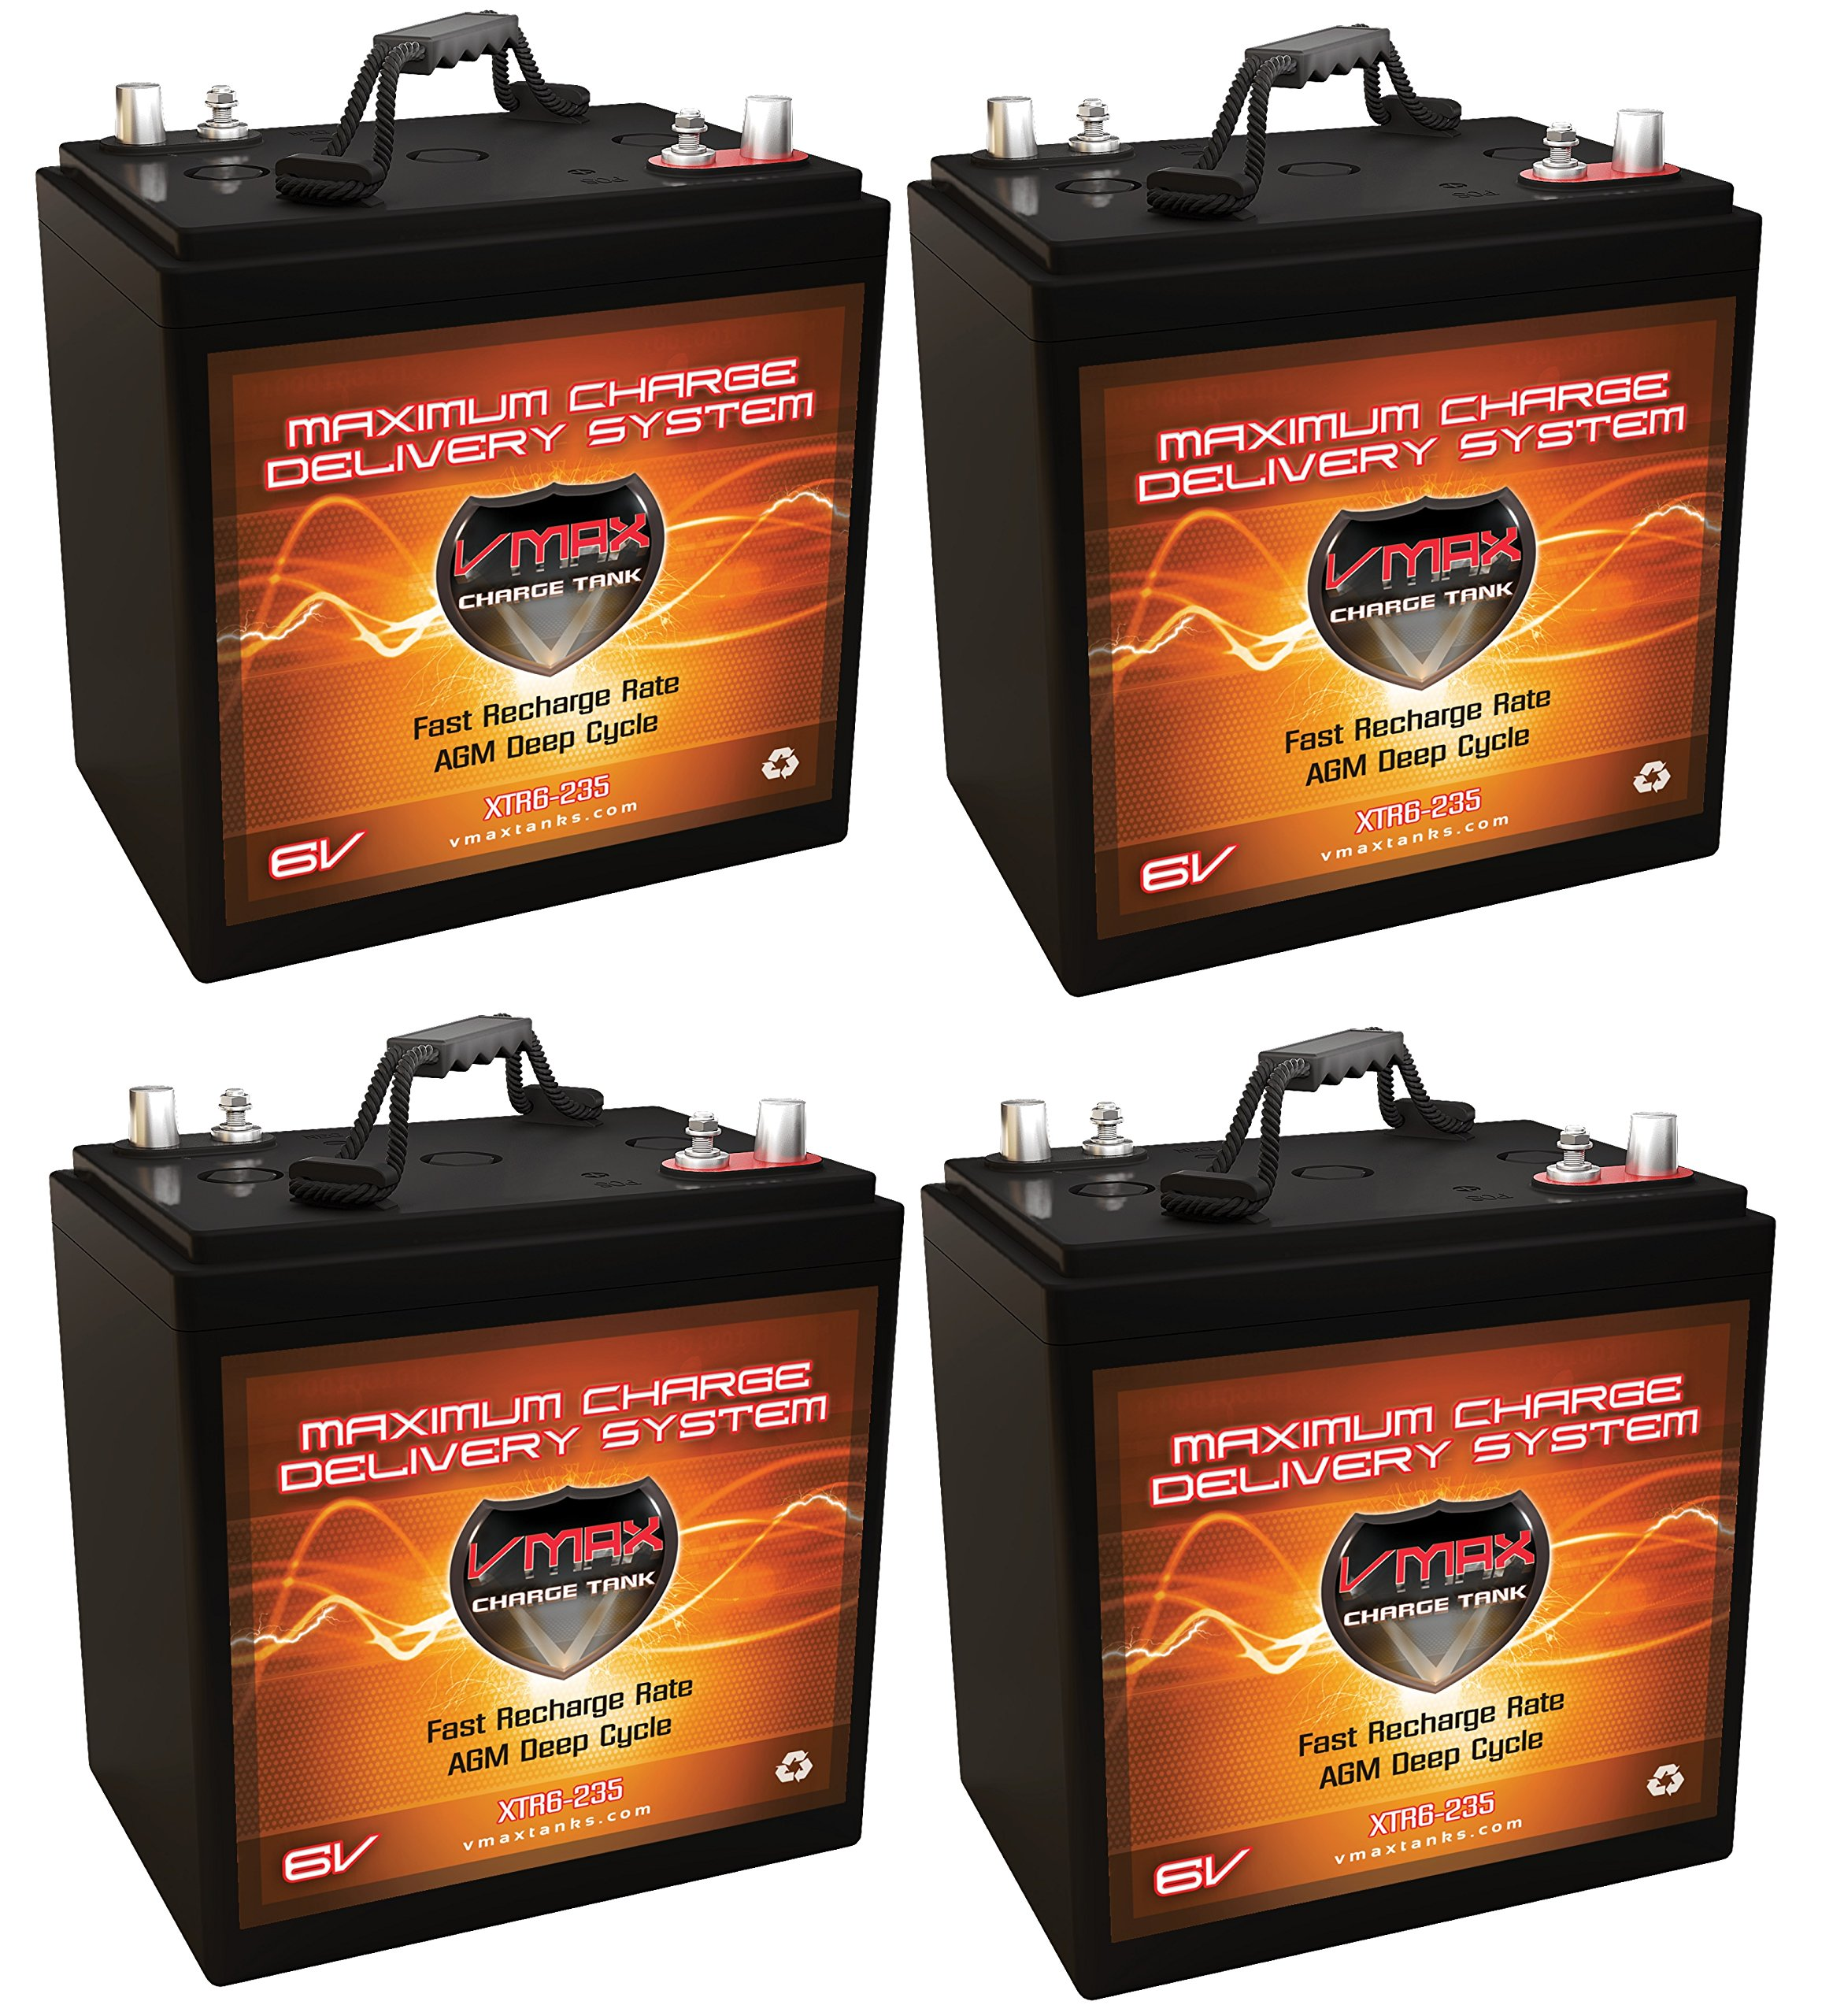 QTY 4 XTR6-235 6V 235AH: 6.48kWh (1.62kWh Each) AGM Solar Battery Bank for Home, RV, or Industrial Qty 4 VMAX Xtreme Series 6V AGM Deep Cycle 235Ah 6 Volt Batteries